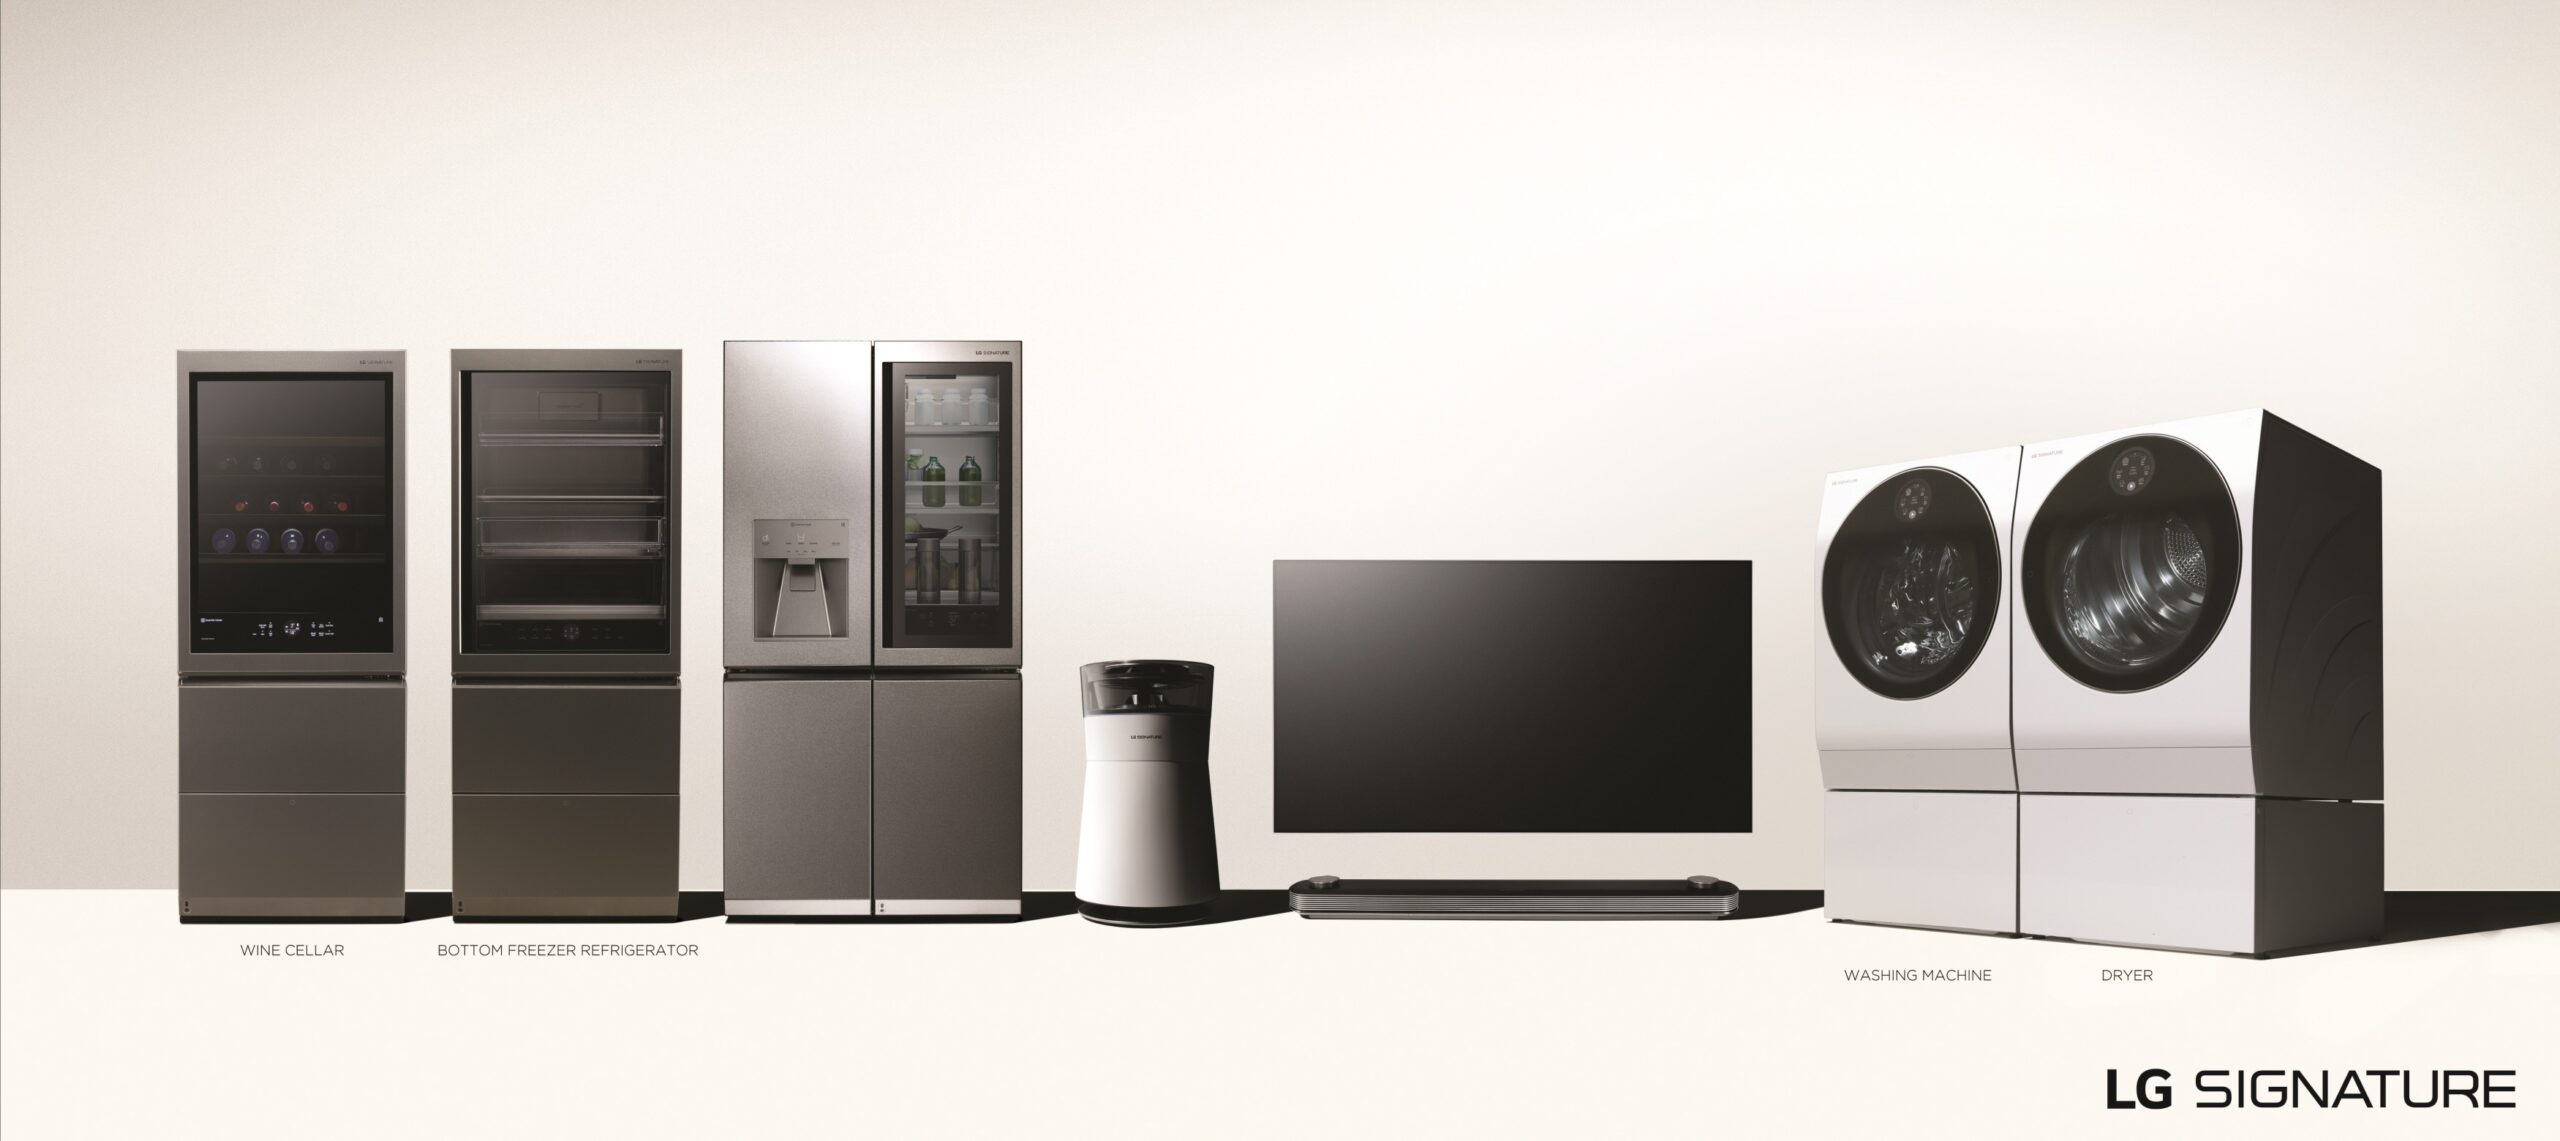 A front image of the LG SIGNATURE ultra-premium product lineup.